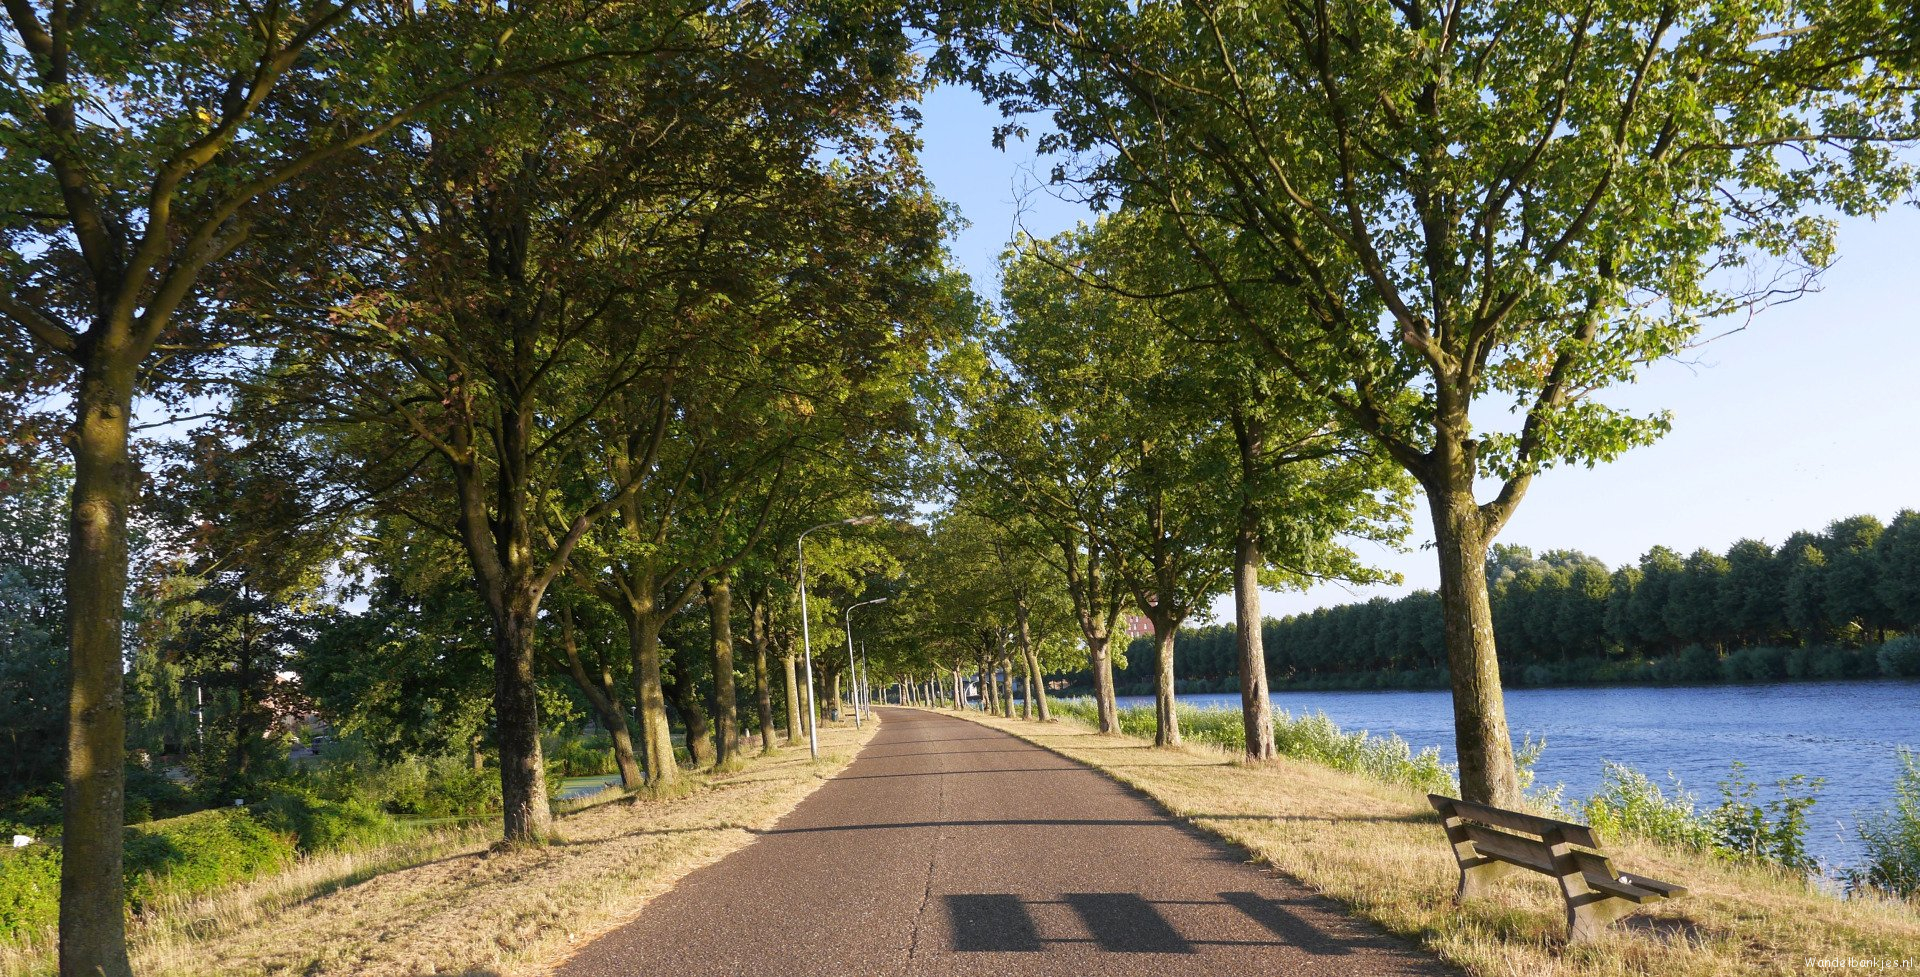 rt-arthurskm-for-walkersbenches-and-walking benches-view-the-maas-waalkanaal-in-nijmegen-https-t-co-qjmb12uq8u